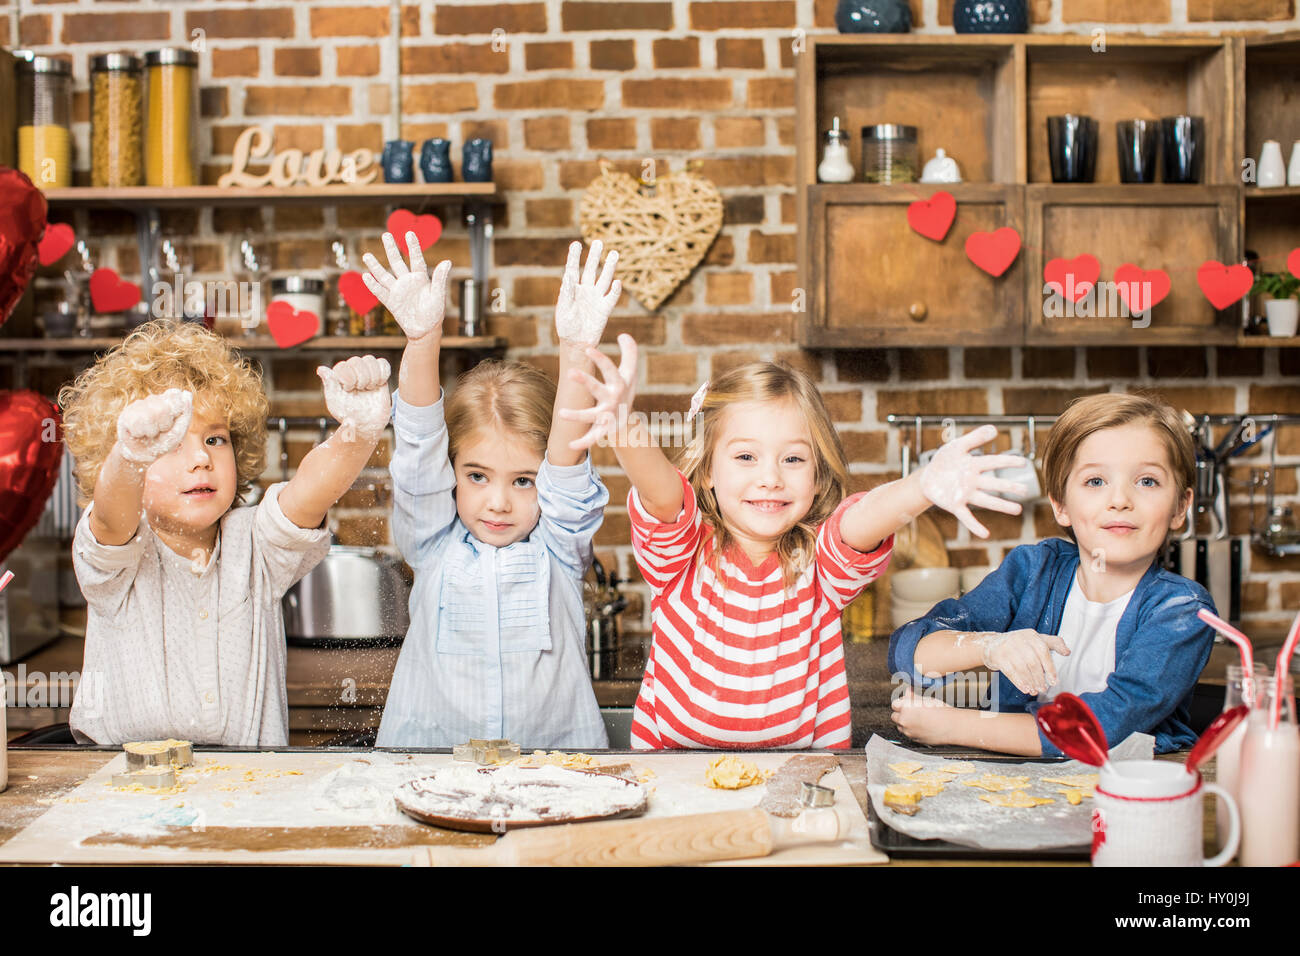 Adorable happy children cooking biscuits and showing hands in flour - Stock Image